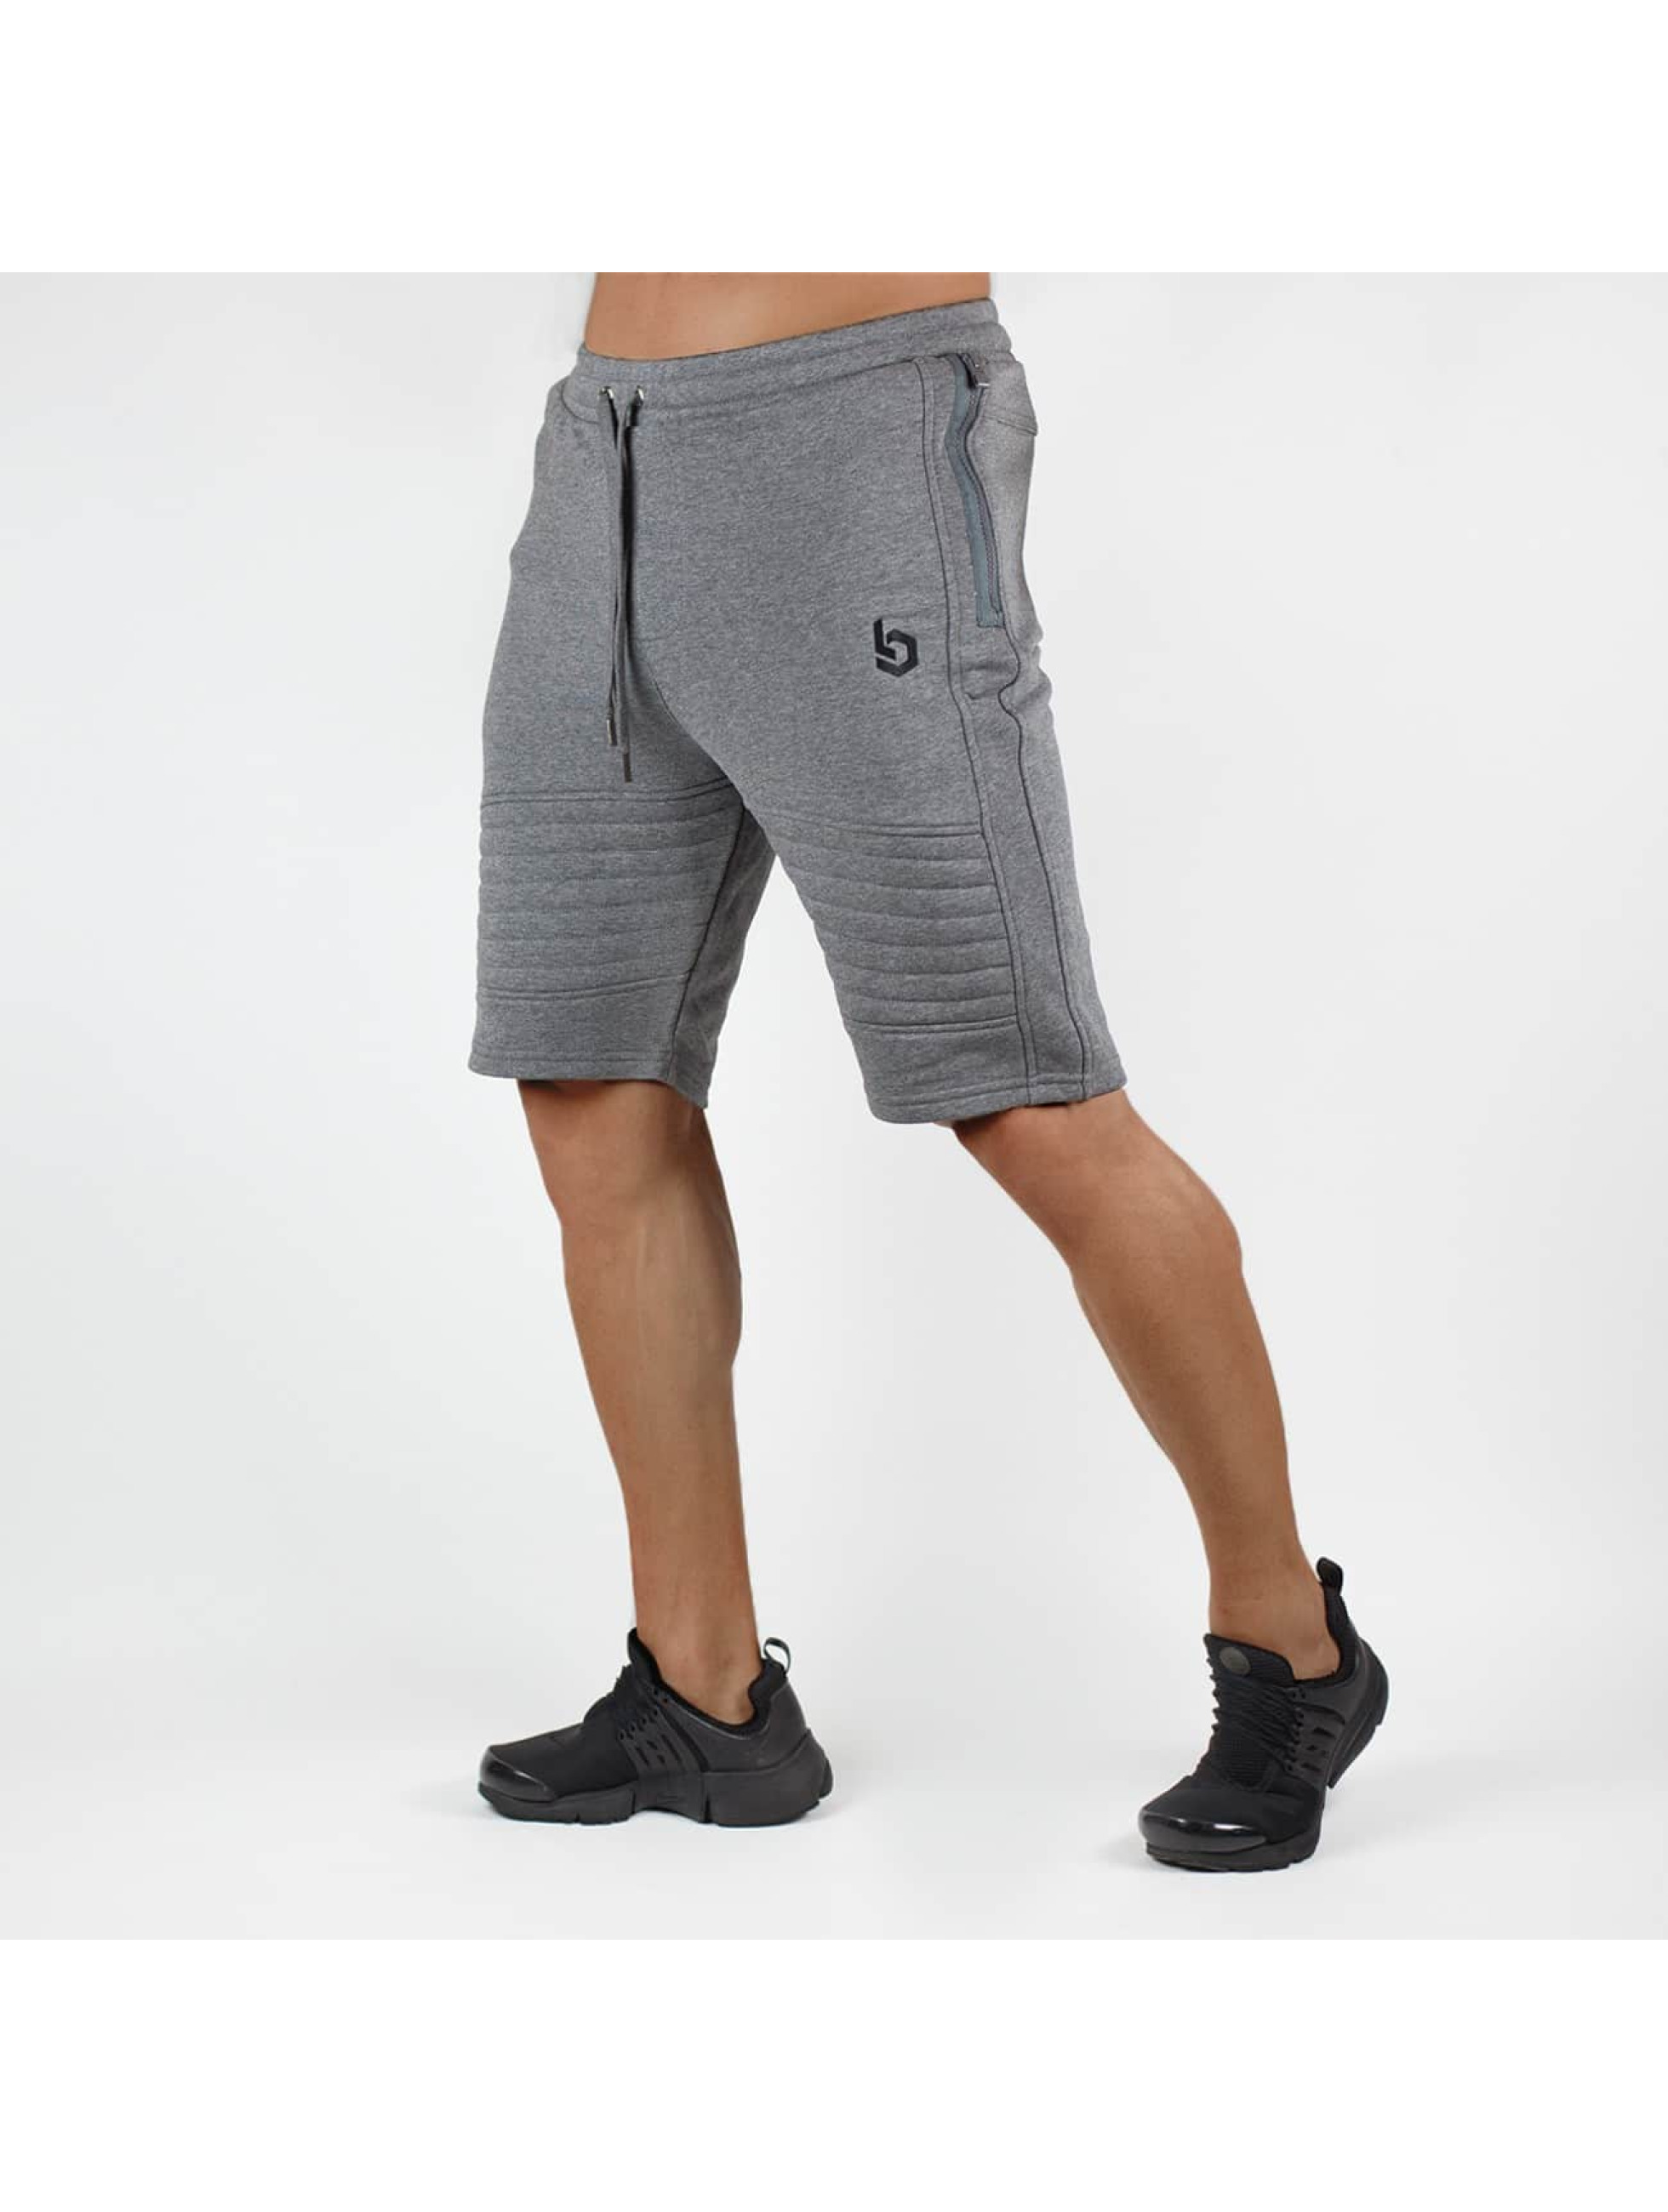 Beyond Limits Short Baseline gray